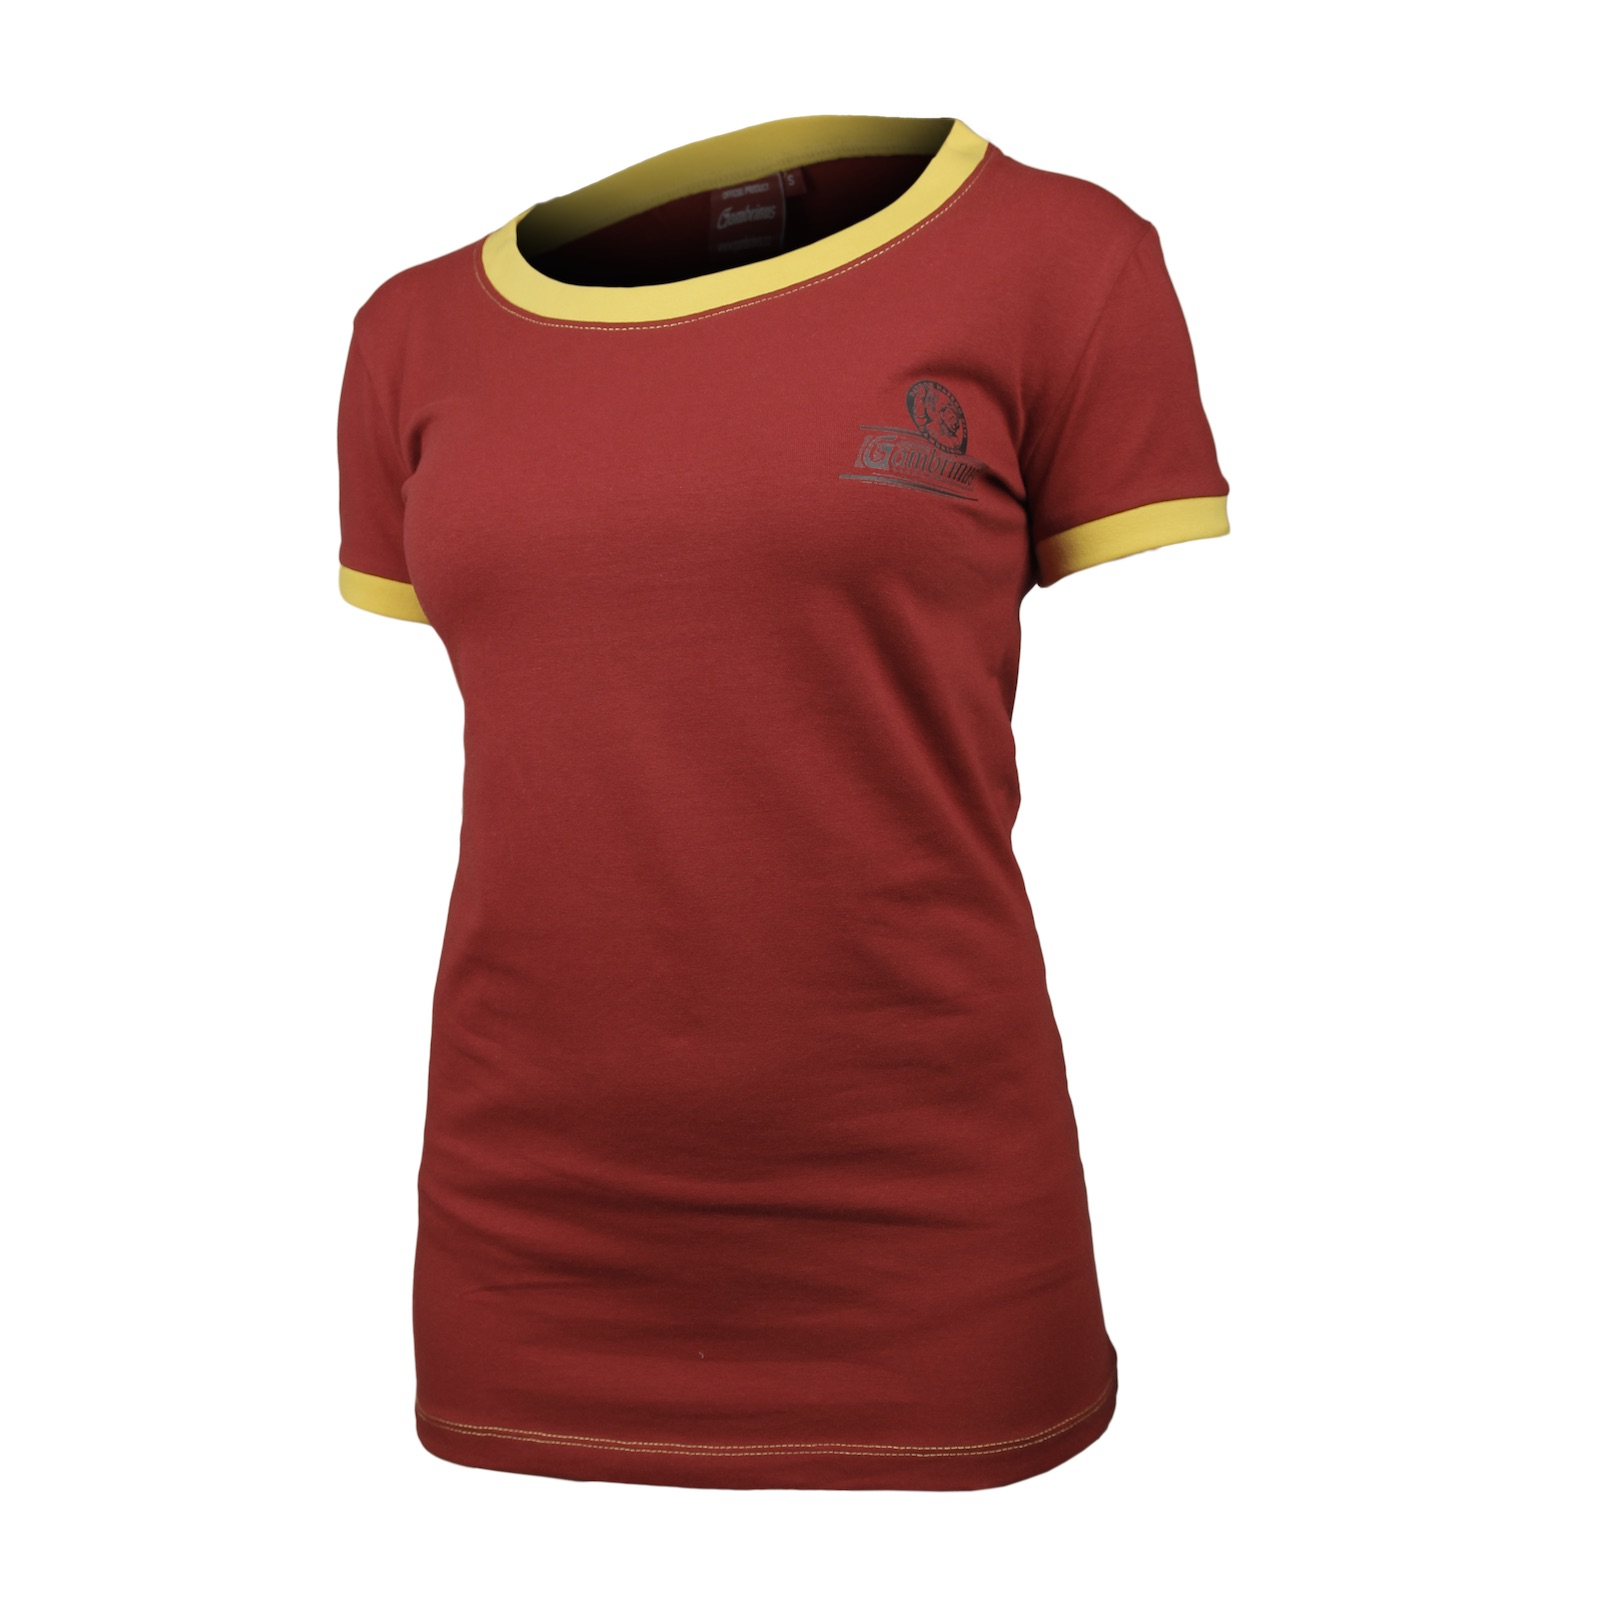 Gambrinus T-shirt ladies red with embroidery